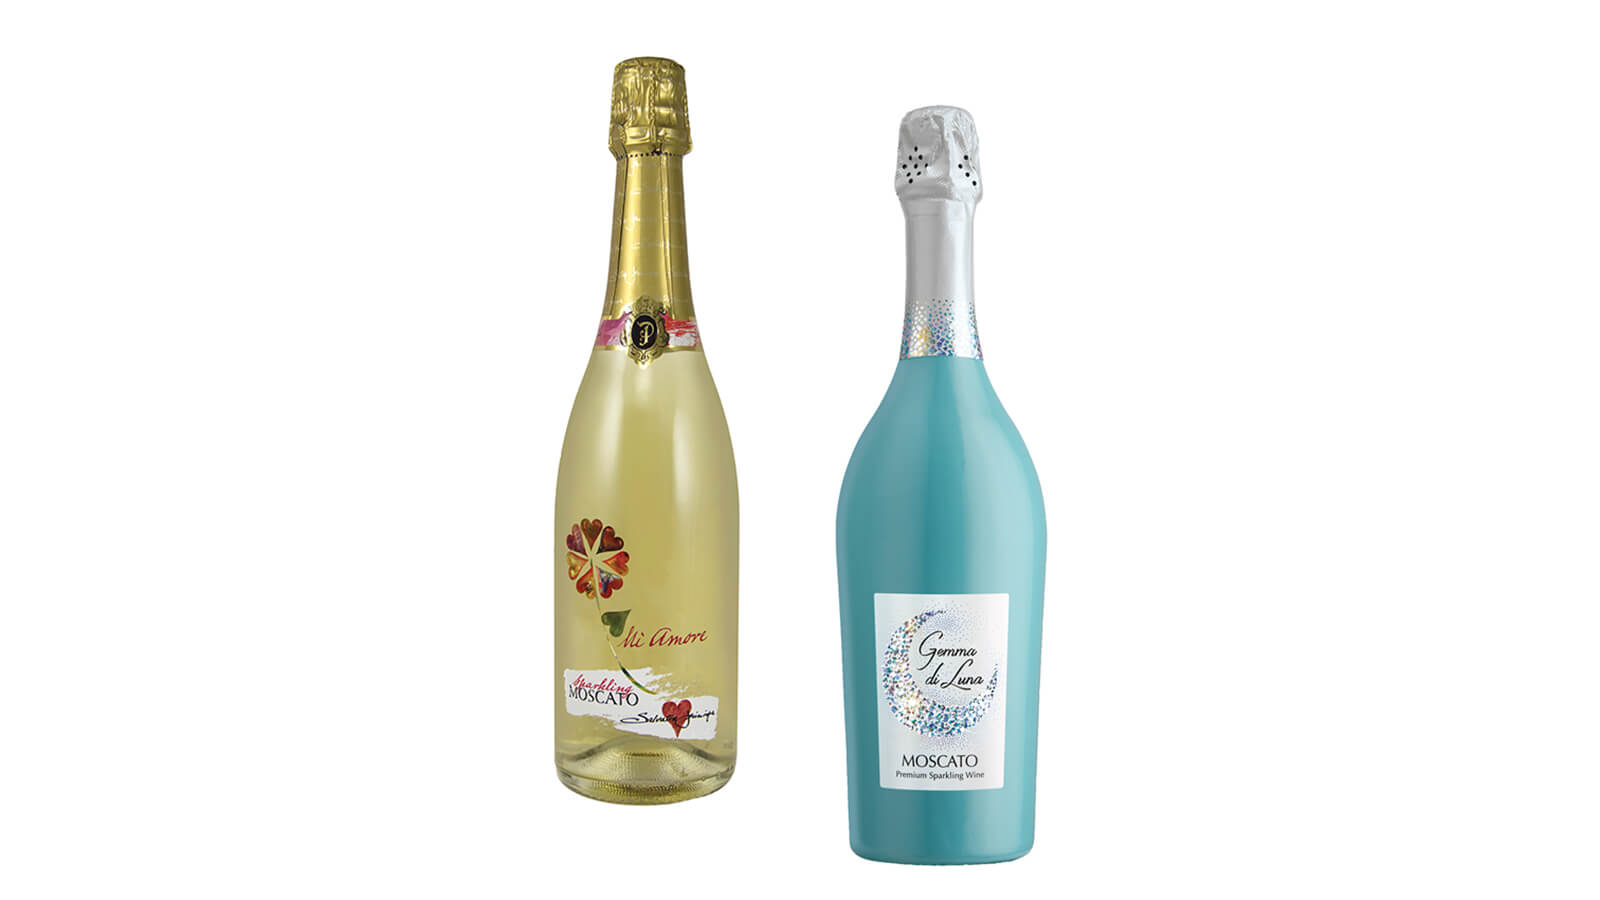 moscato bottles